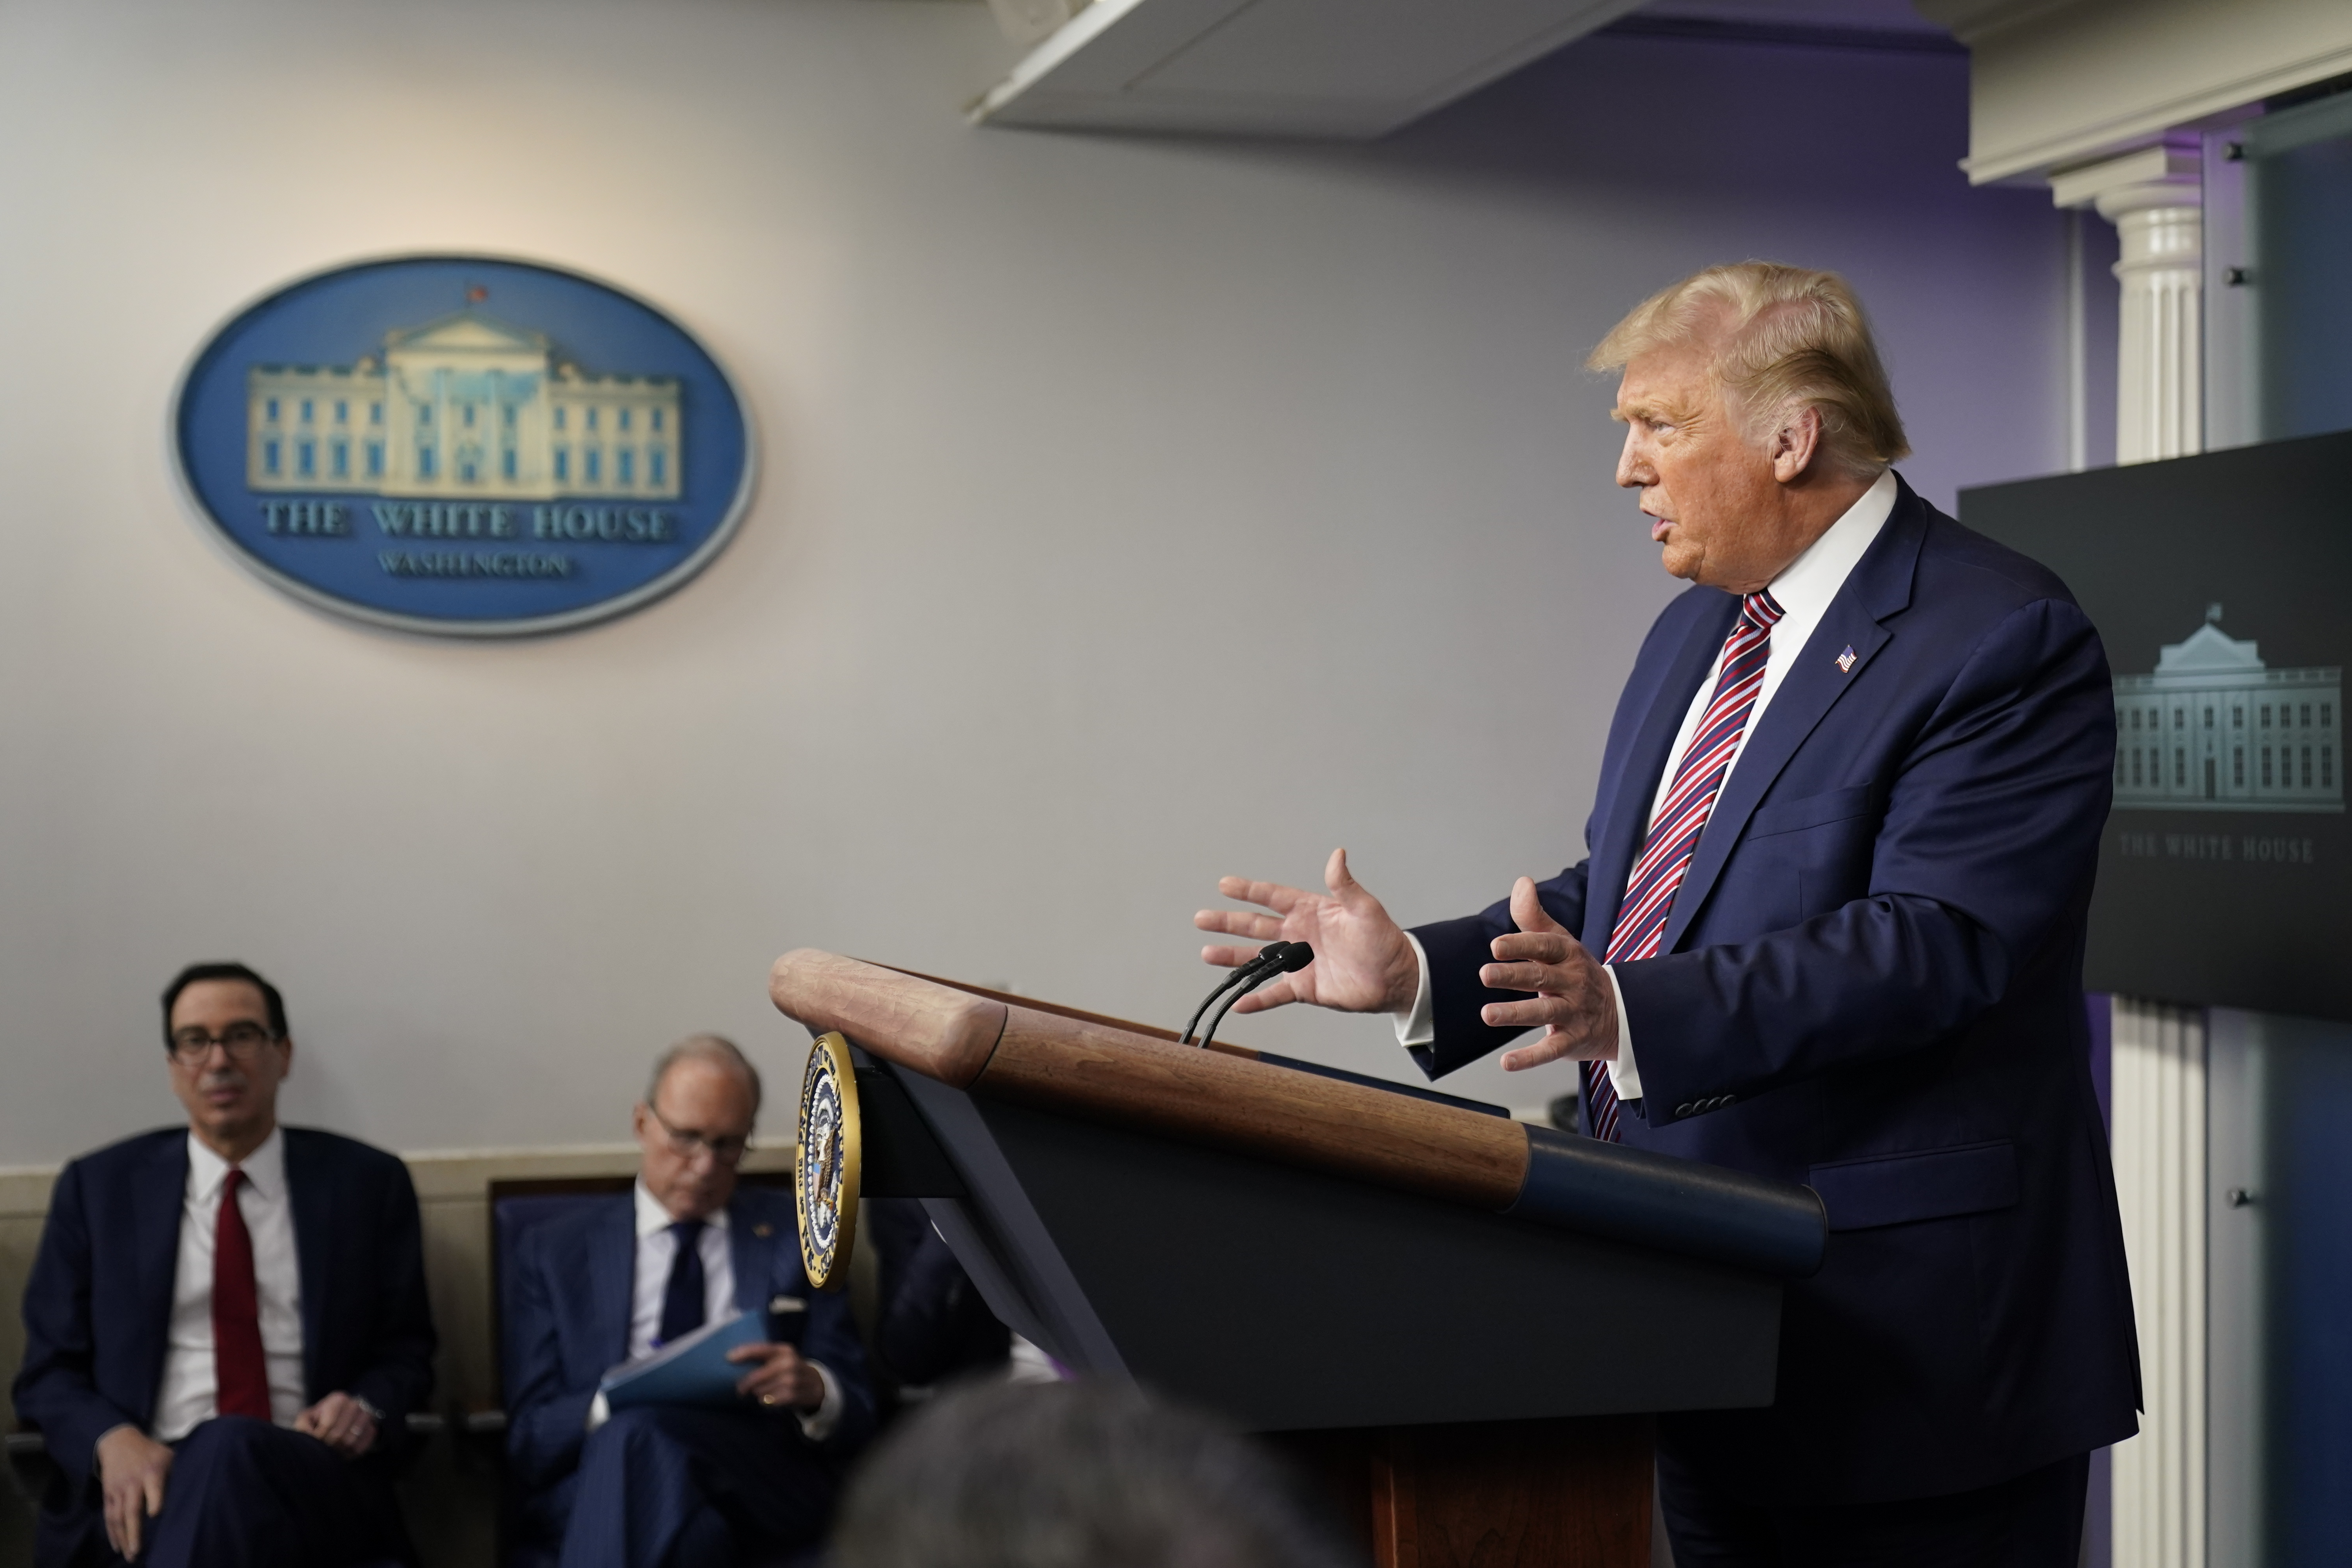 President Donald Trump speaks at a news conference at the White House on Aug. 12, 2020